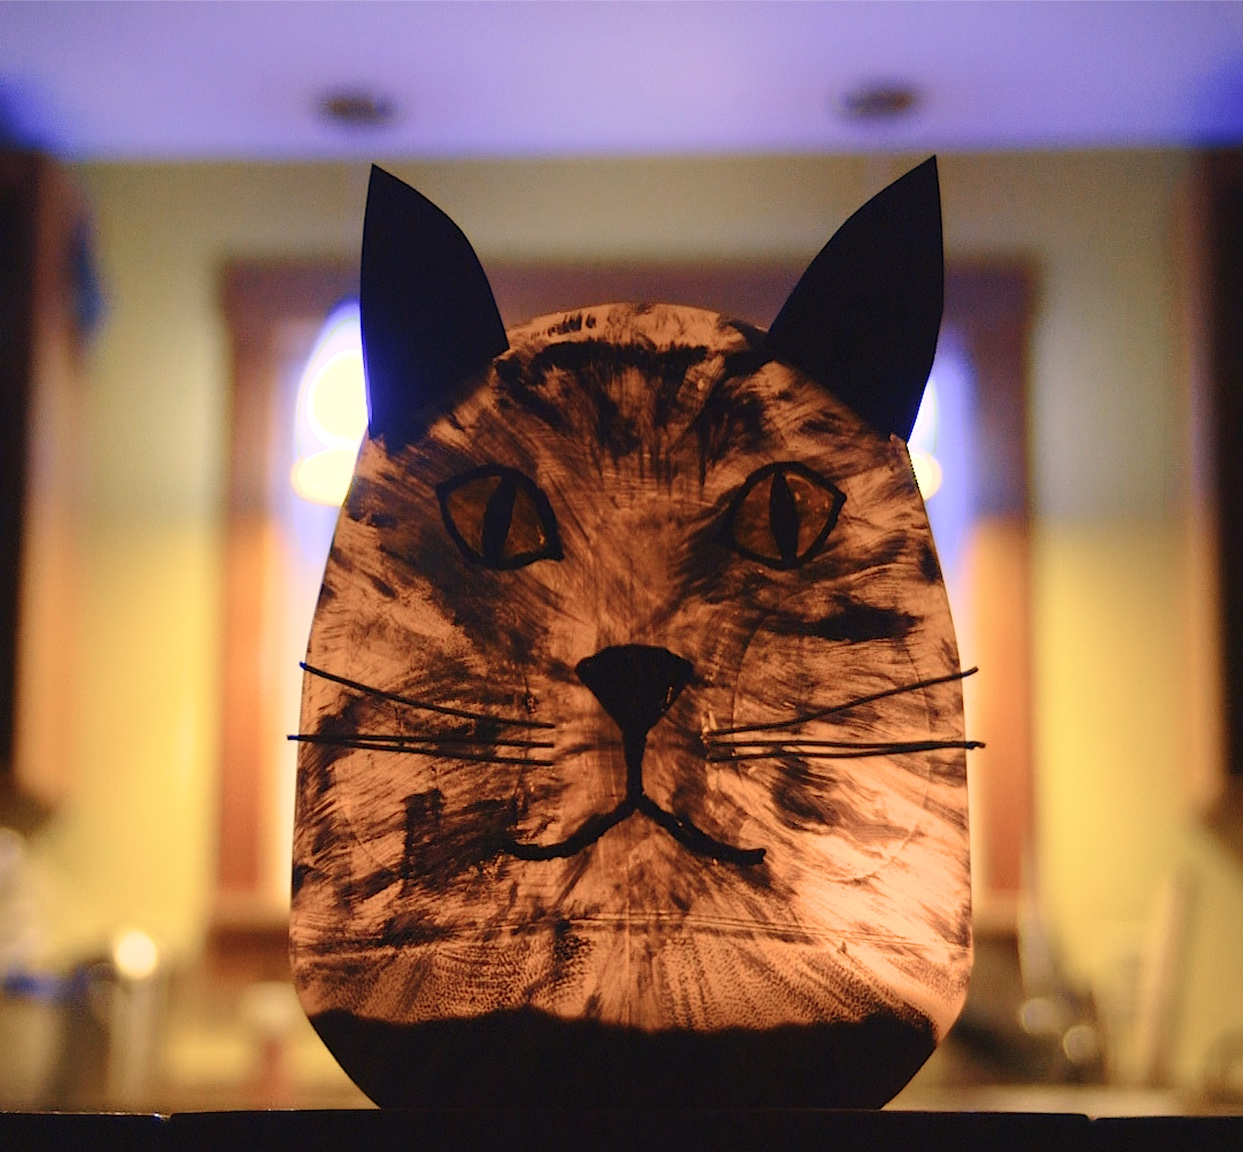 A completed and illuminated milk jug luminary with a cat face and ears.